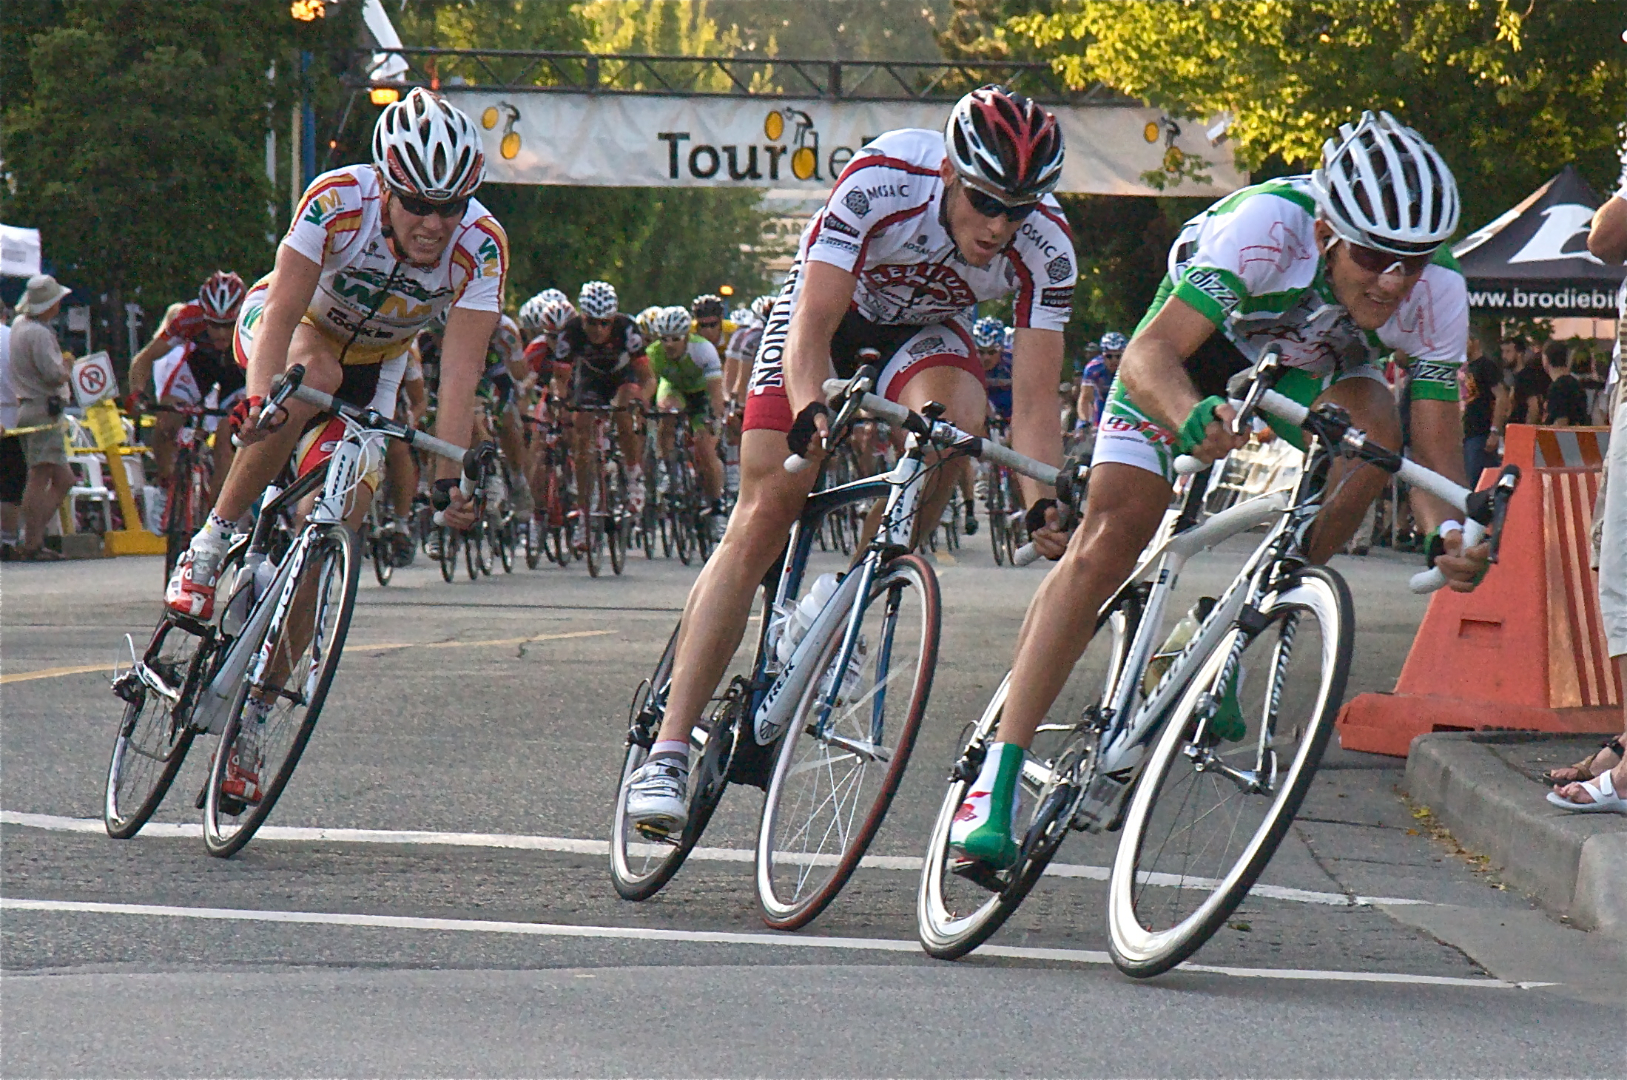 Tour de Delta photo by Ian Logie